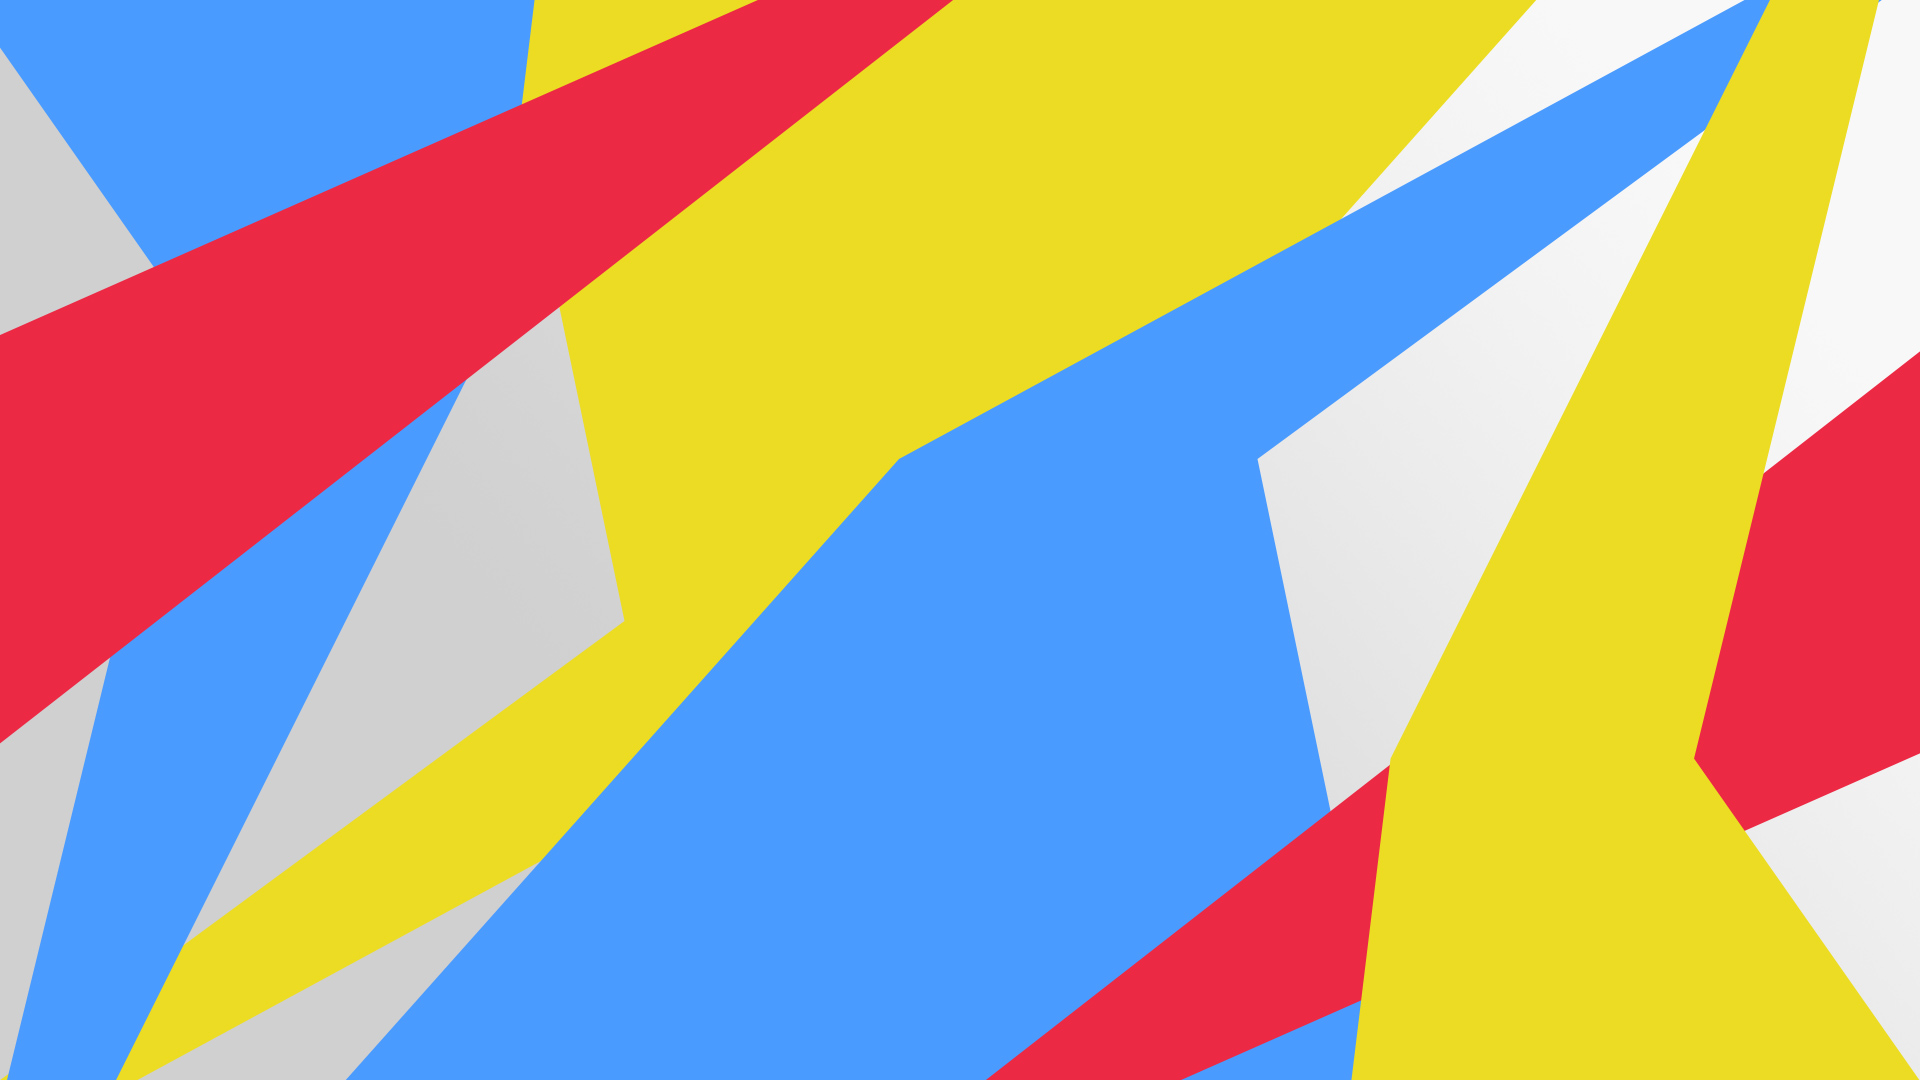 Android Wallpaper Minimal Shapes HD Wallpapers Download Free Images Wallpaper [1000image.com]